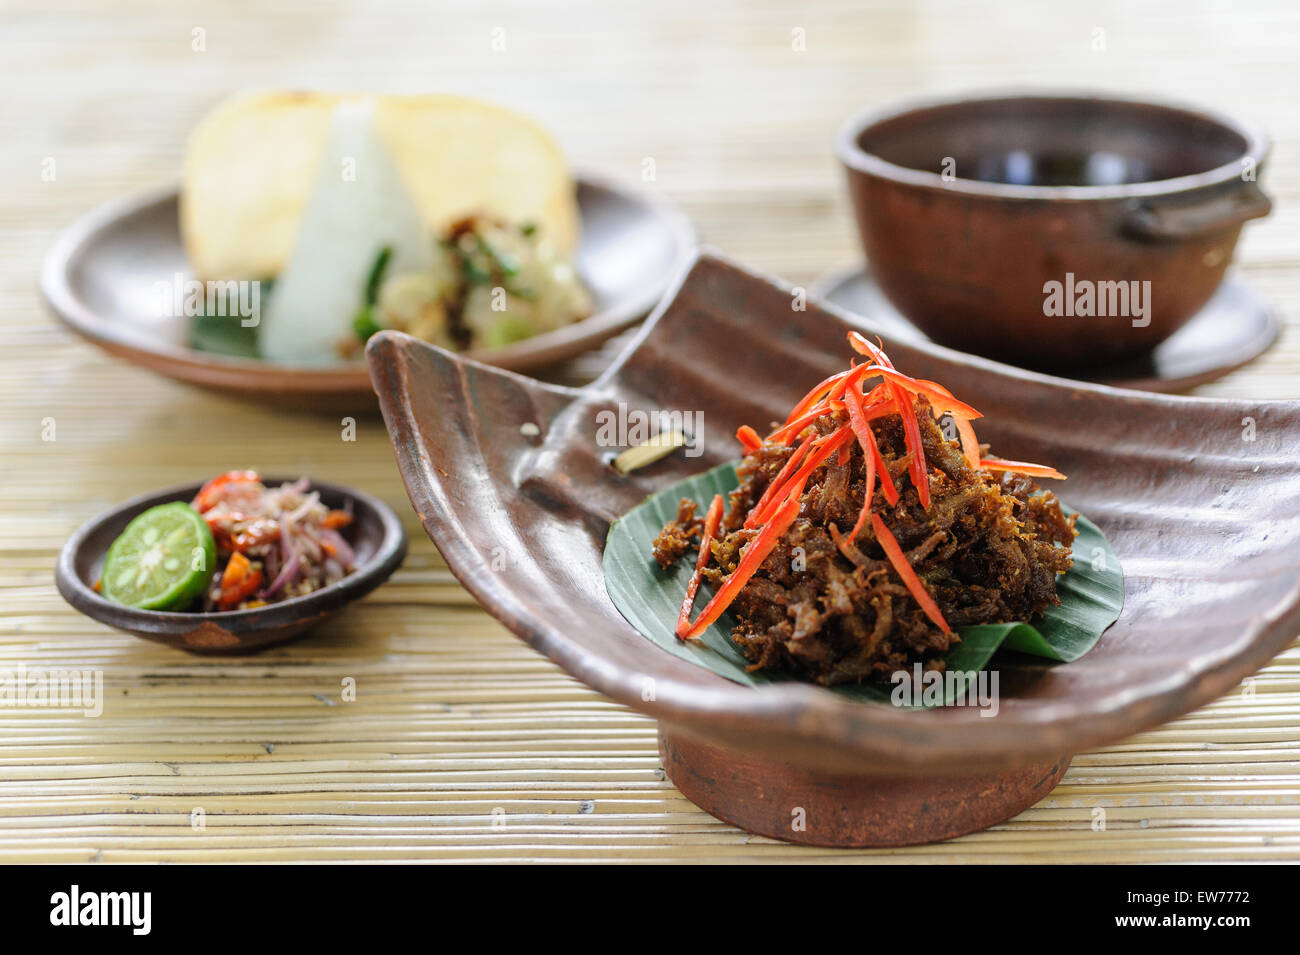 Balinese crispy duck garnished with chillies and served with sambal, soup, rice and vegetable. - Stock Image